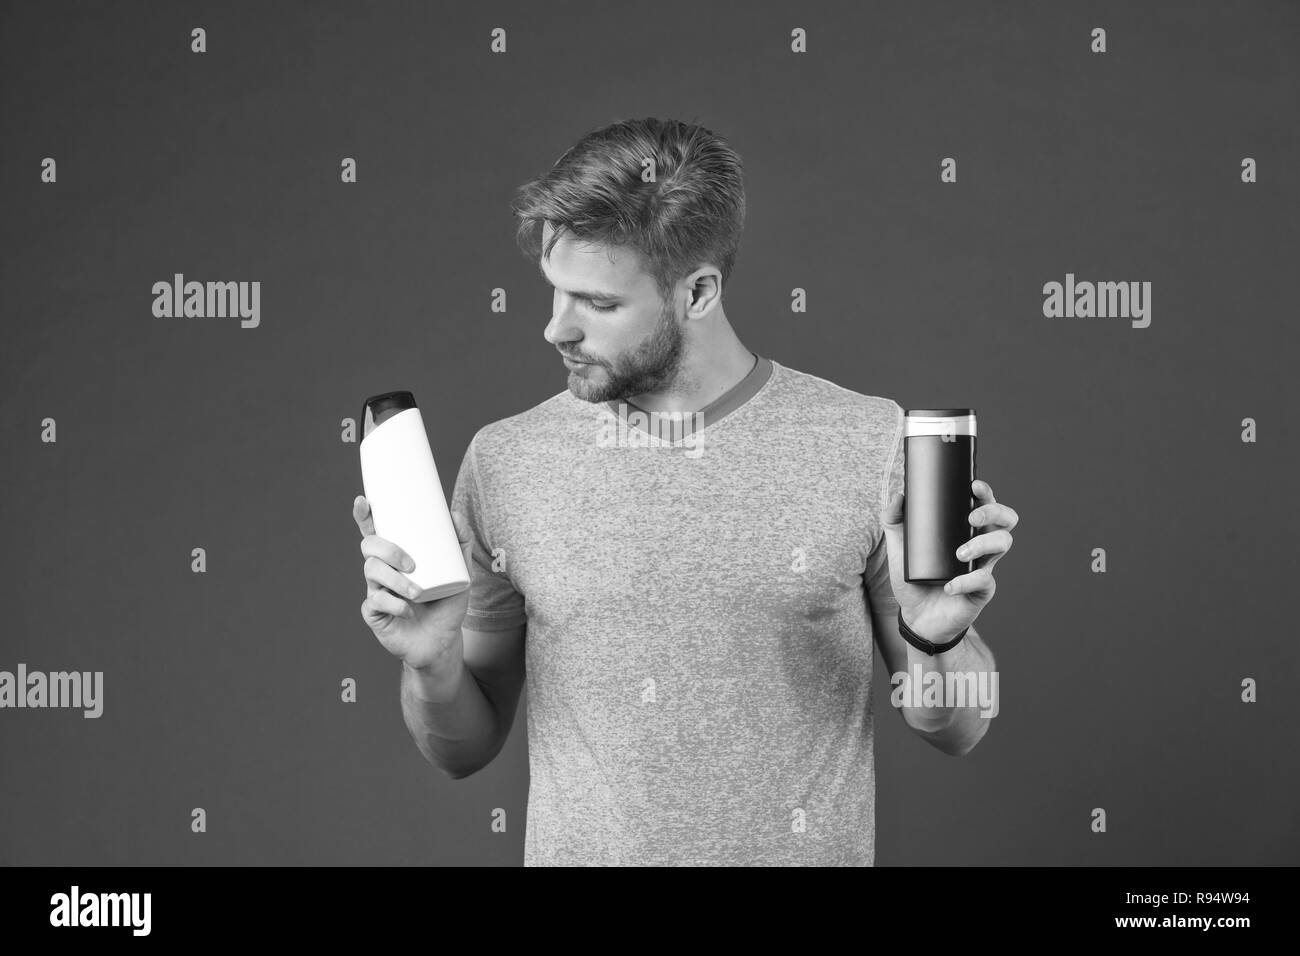 Man on thoughtful face chooses shampoo, violet background. Guy with bristle holds two bottles with shampoo, copy space. Man hesitates while making alternative decision. Hair care and shampoo concept. Stock Photo